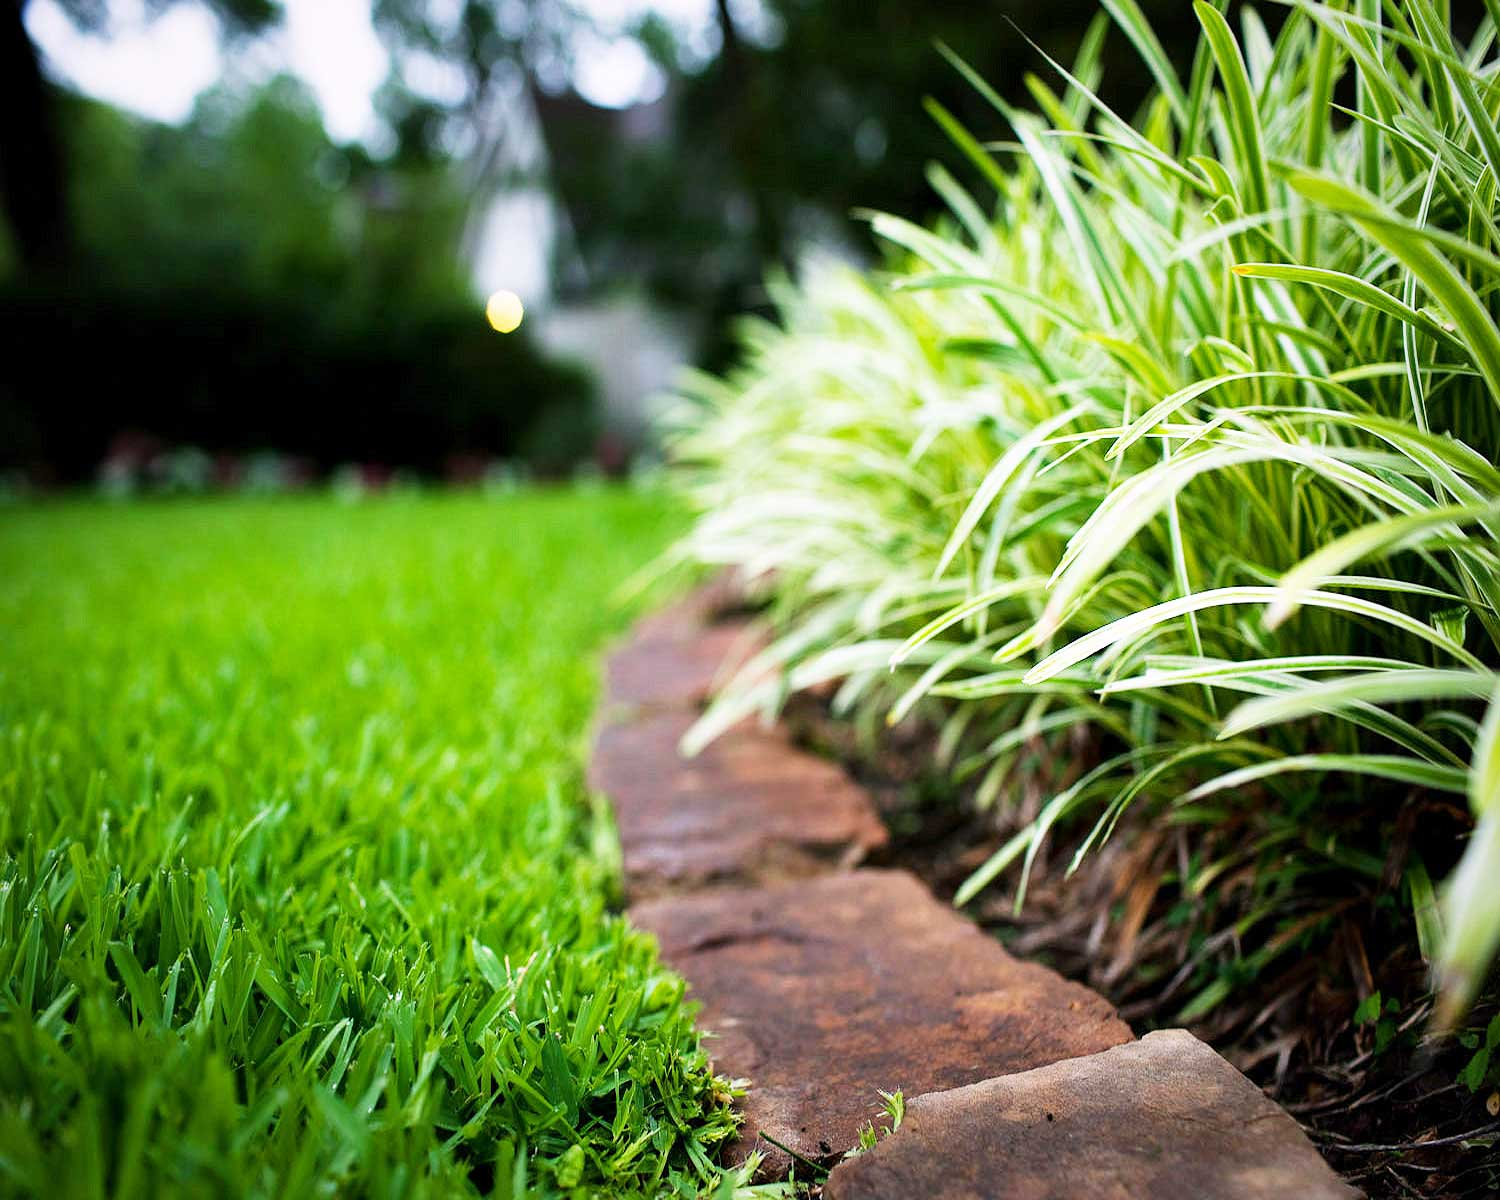 Lawn care landscaping services merry moppins cleaning for Local lawn care services